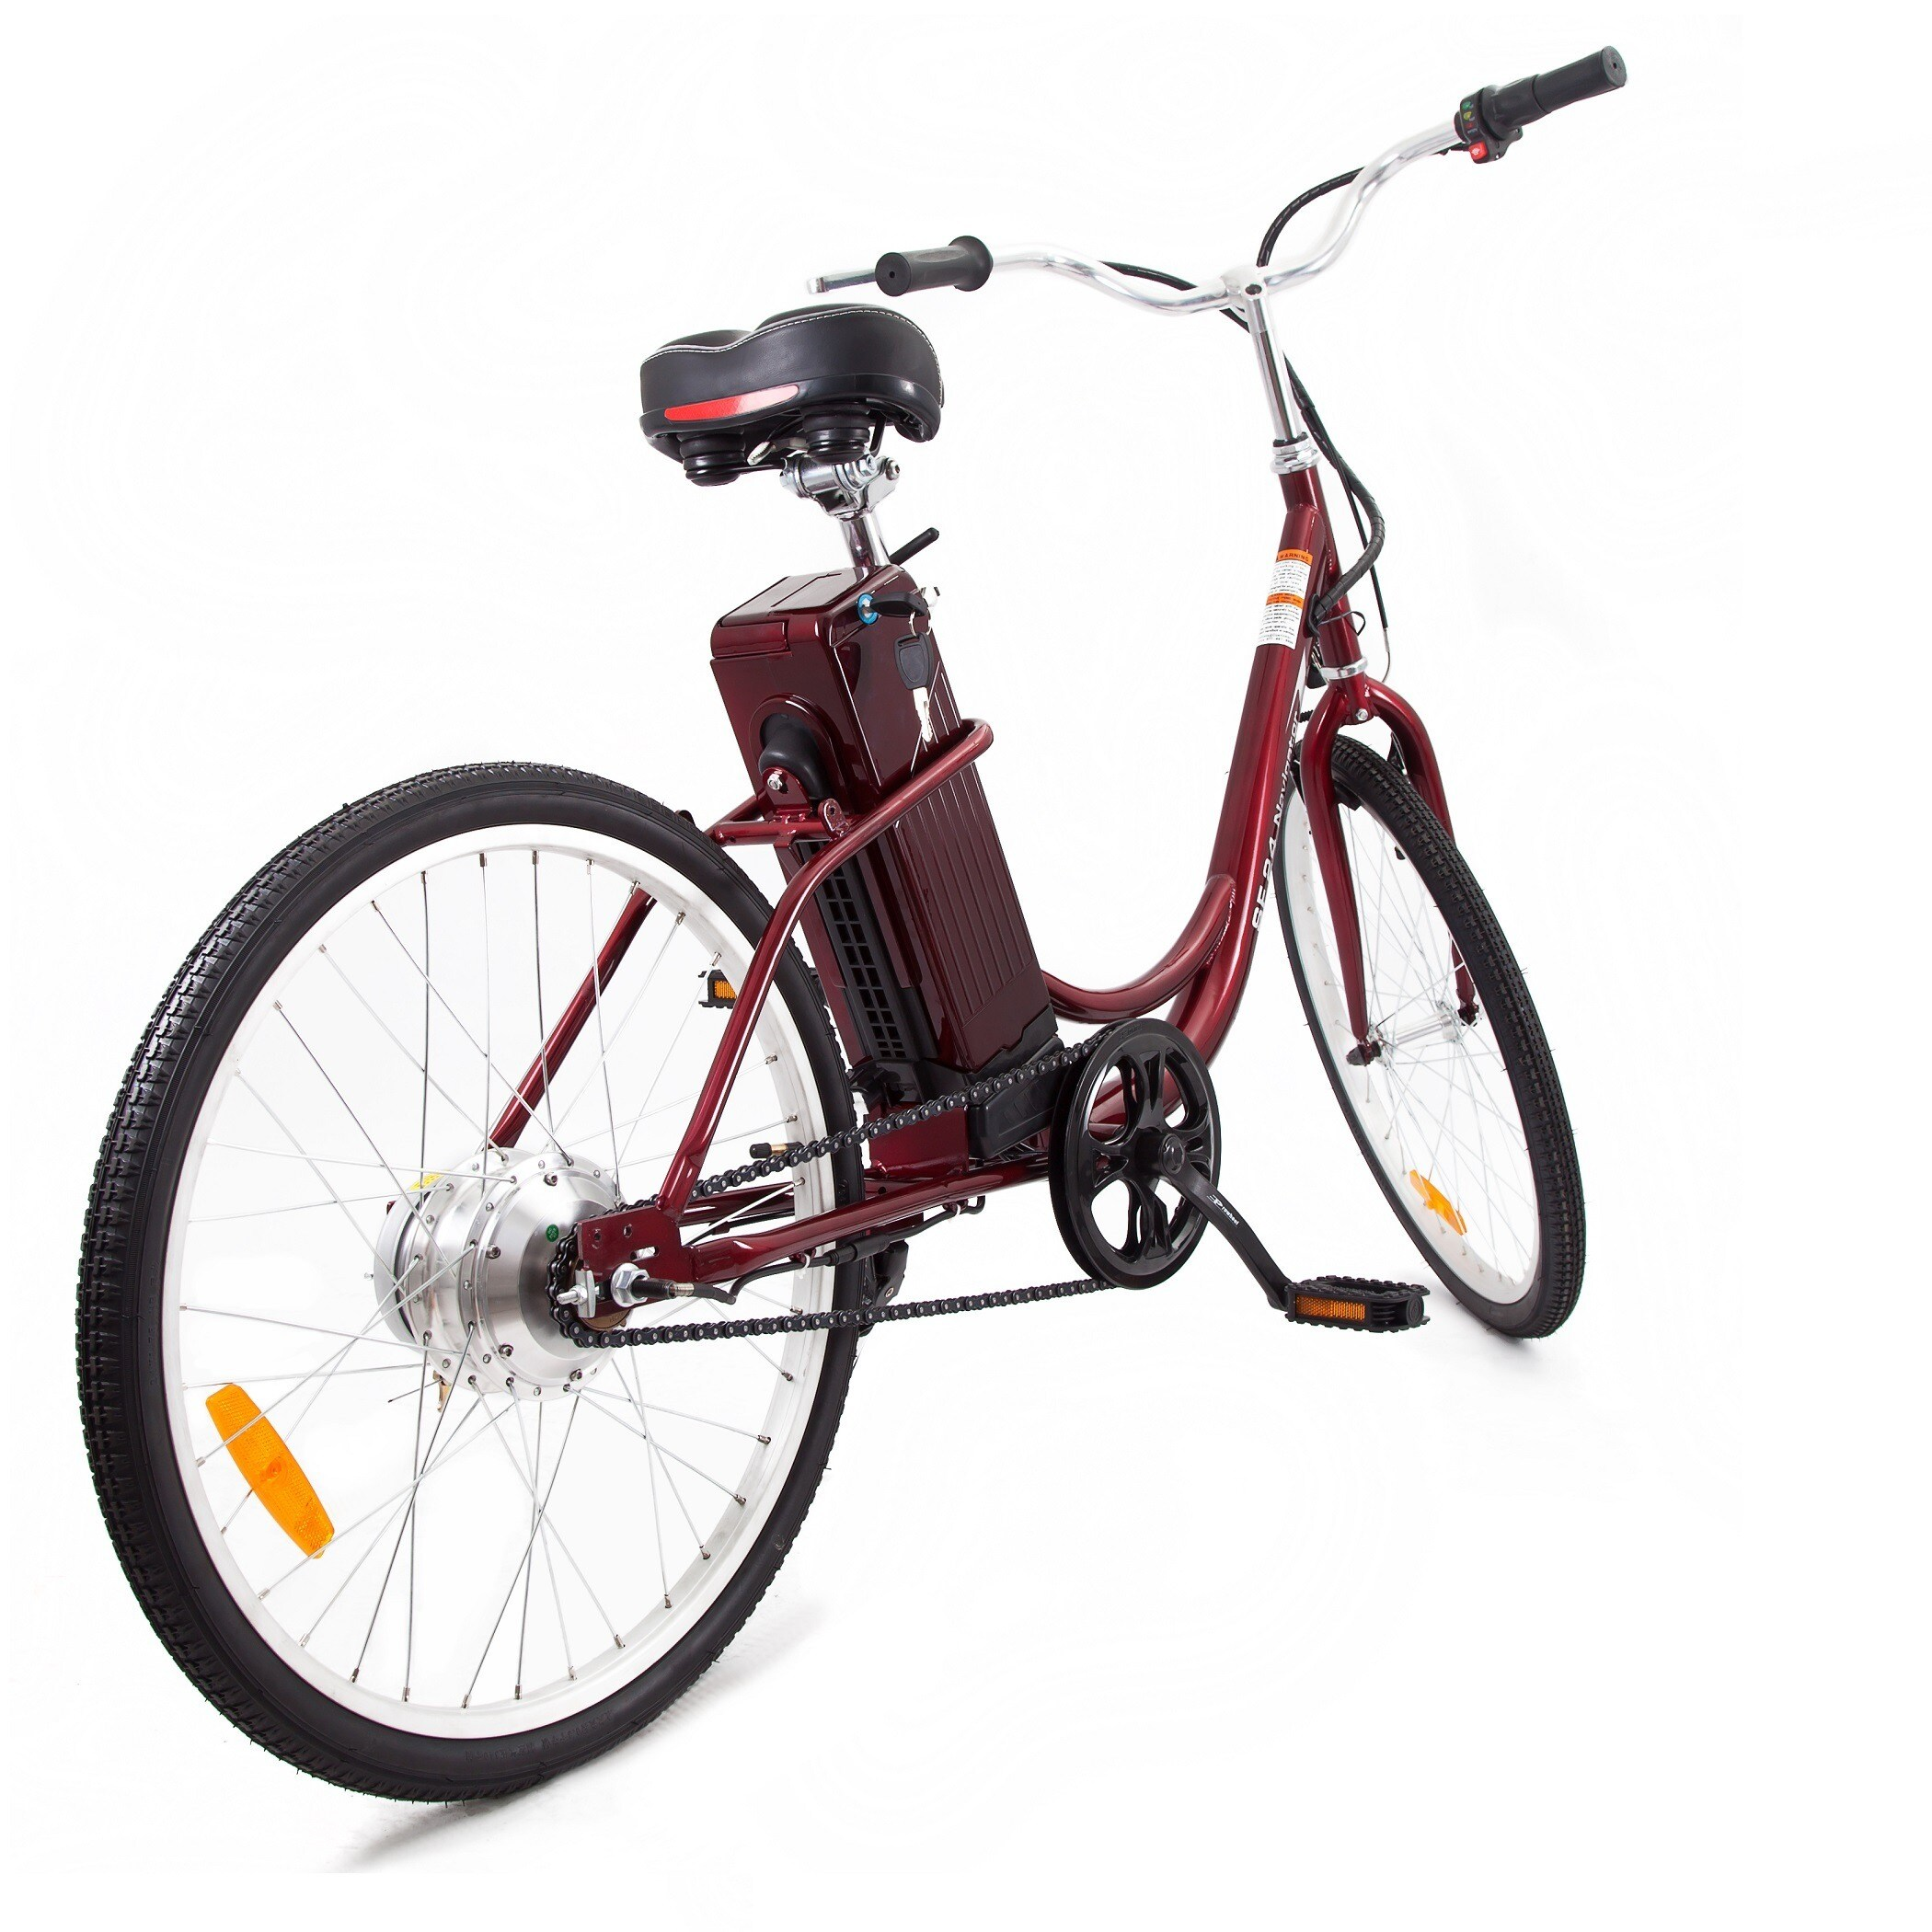 Bicycle Navigator: description, specifications, customer reviews